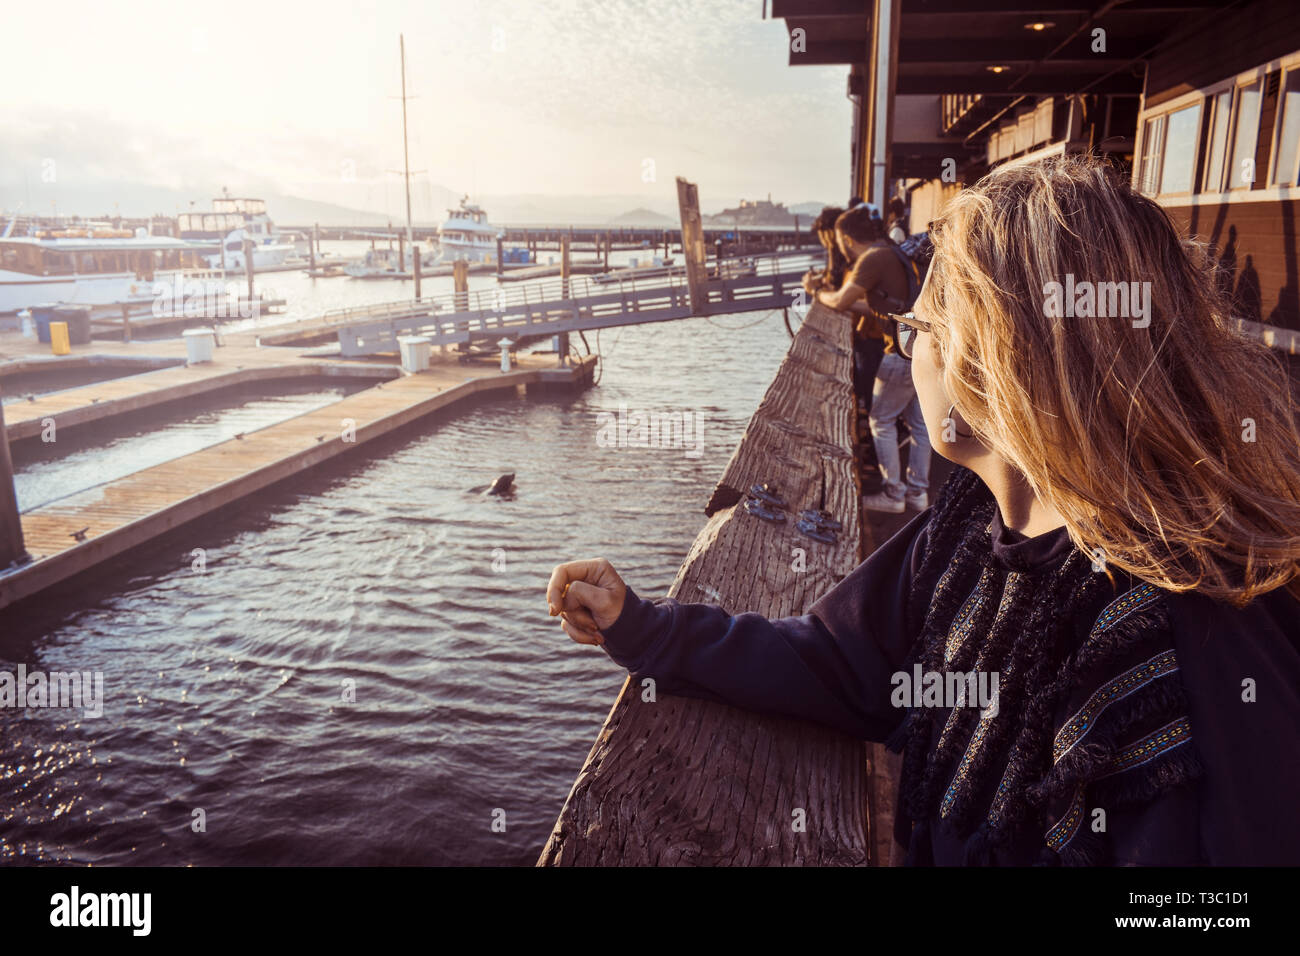 Tourist woman at Pier 39, San Francisco, California, looking at sea lions. Sunset view. - Stock Image